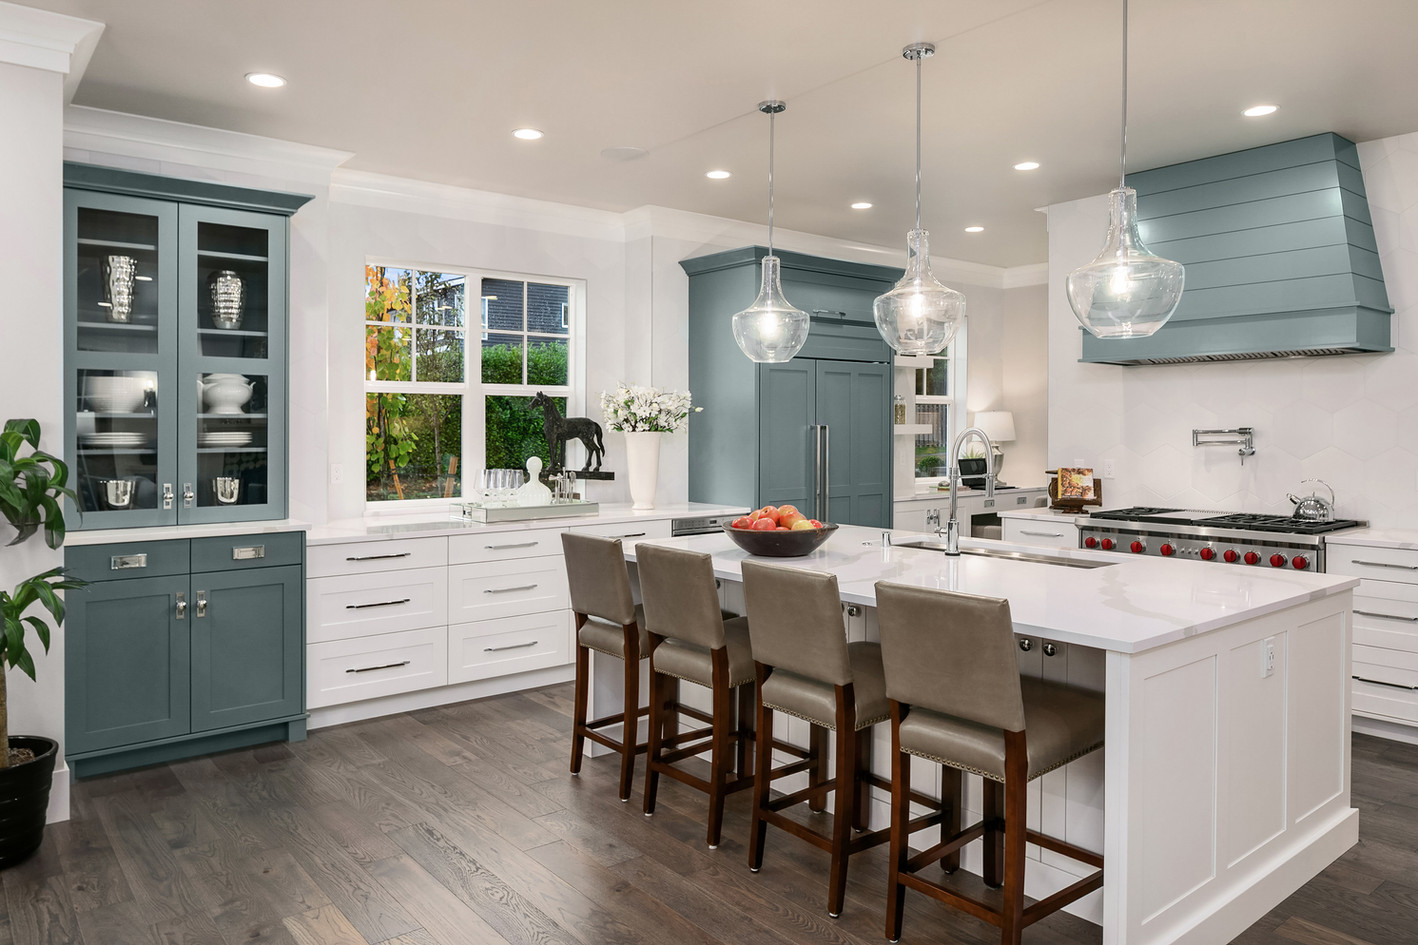 Enfort Homes Kirkland Kitchen Island.jpg